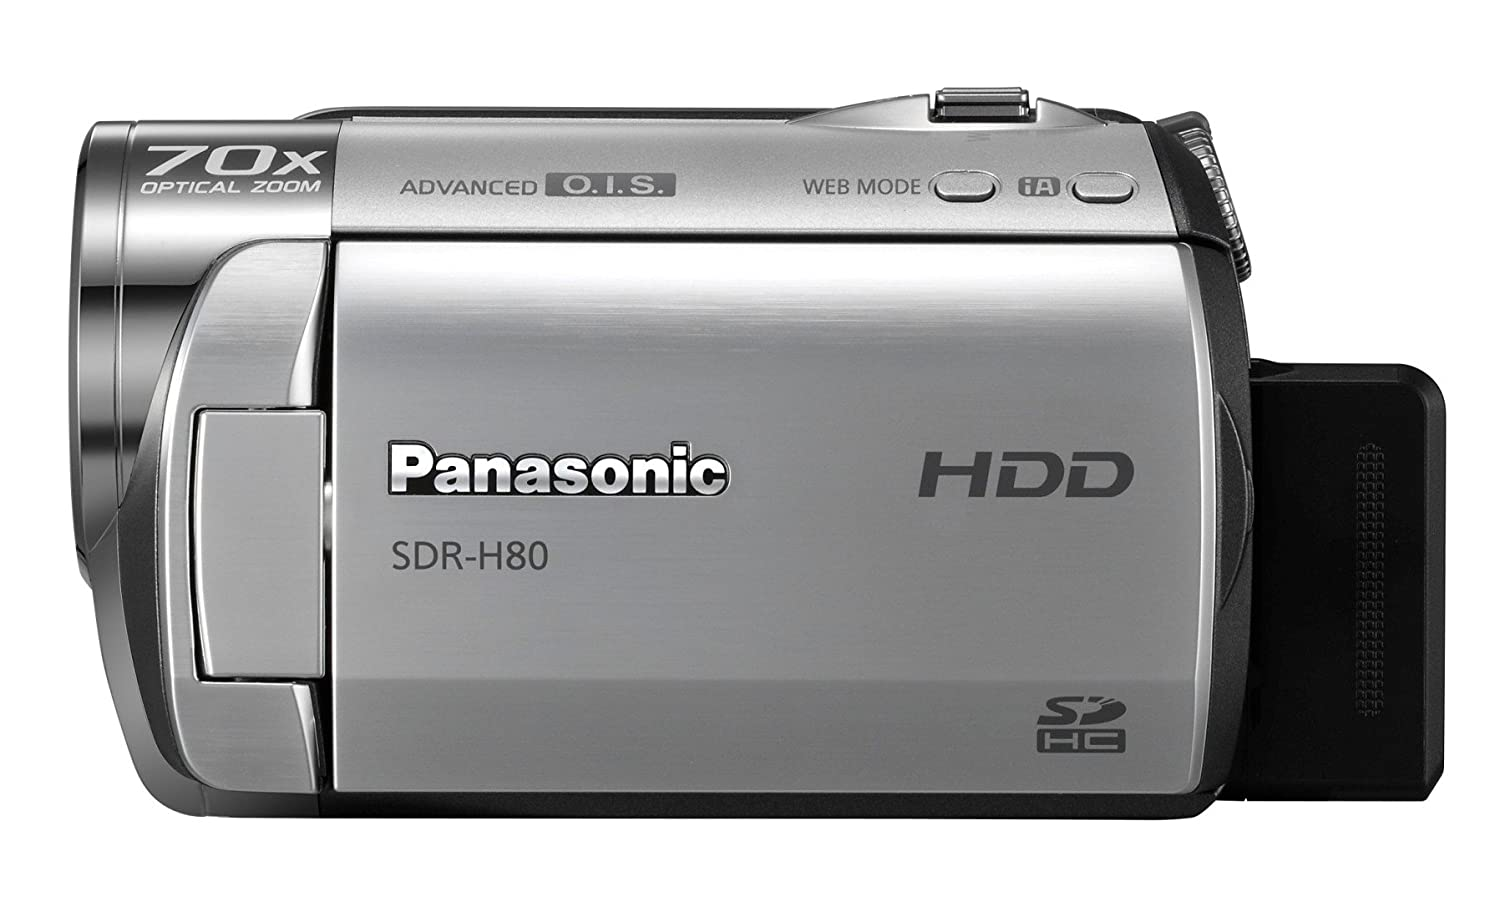 Amazon.com : Panasonic SDR-H80 SD and HDD Camcorder (Black) : Hard Disk  Drive Camcorders : Camera & Photo